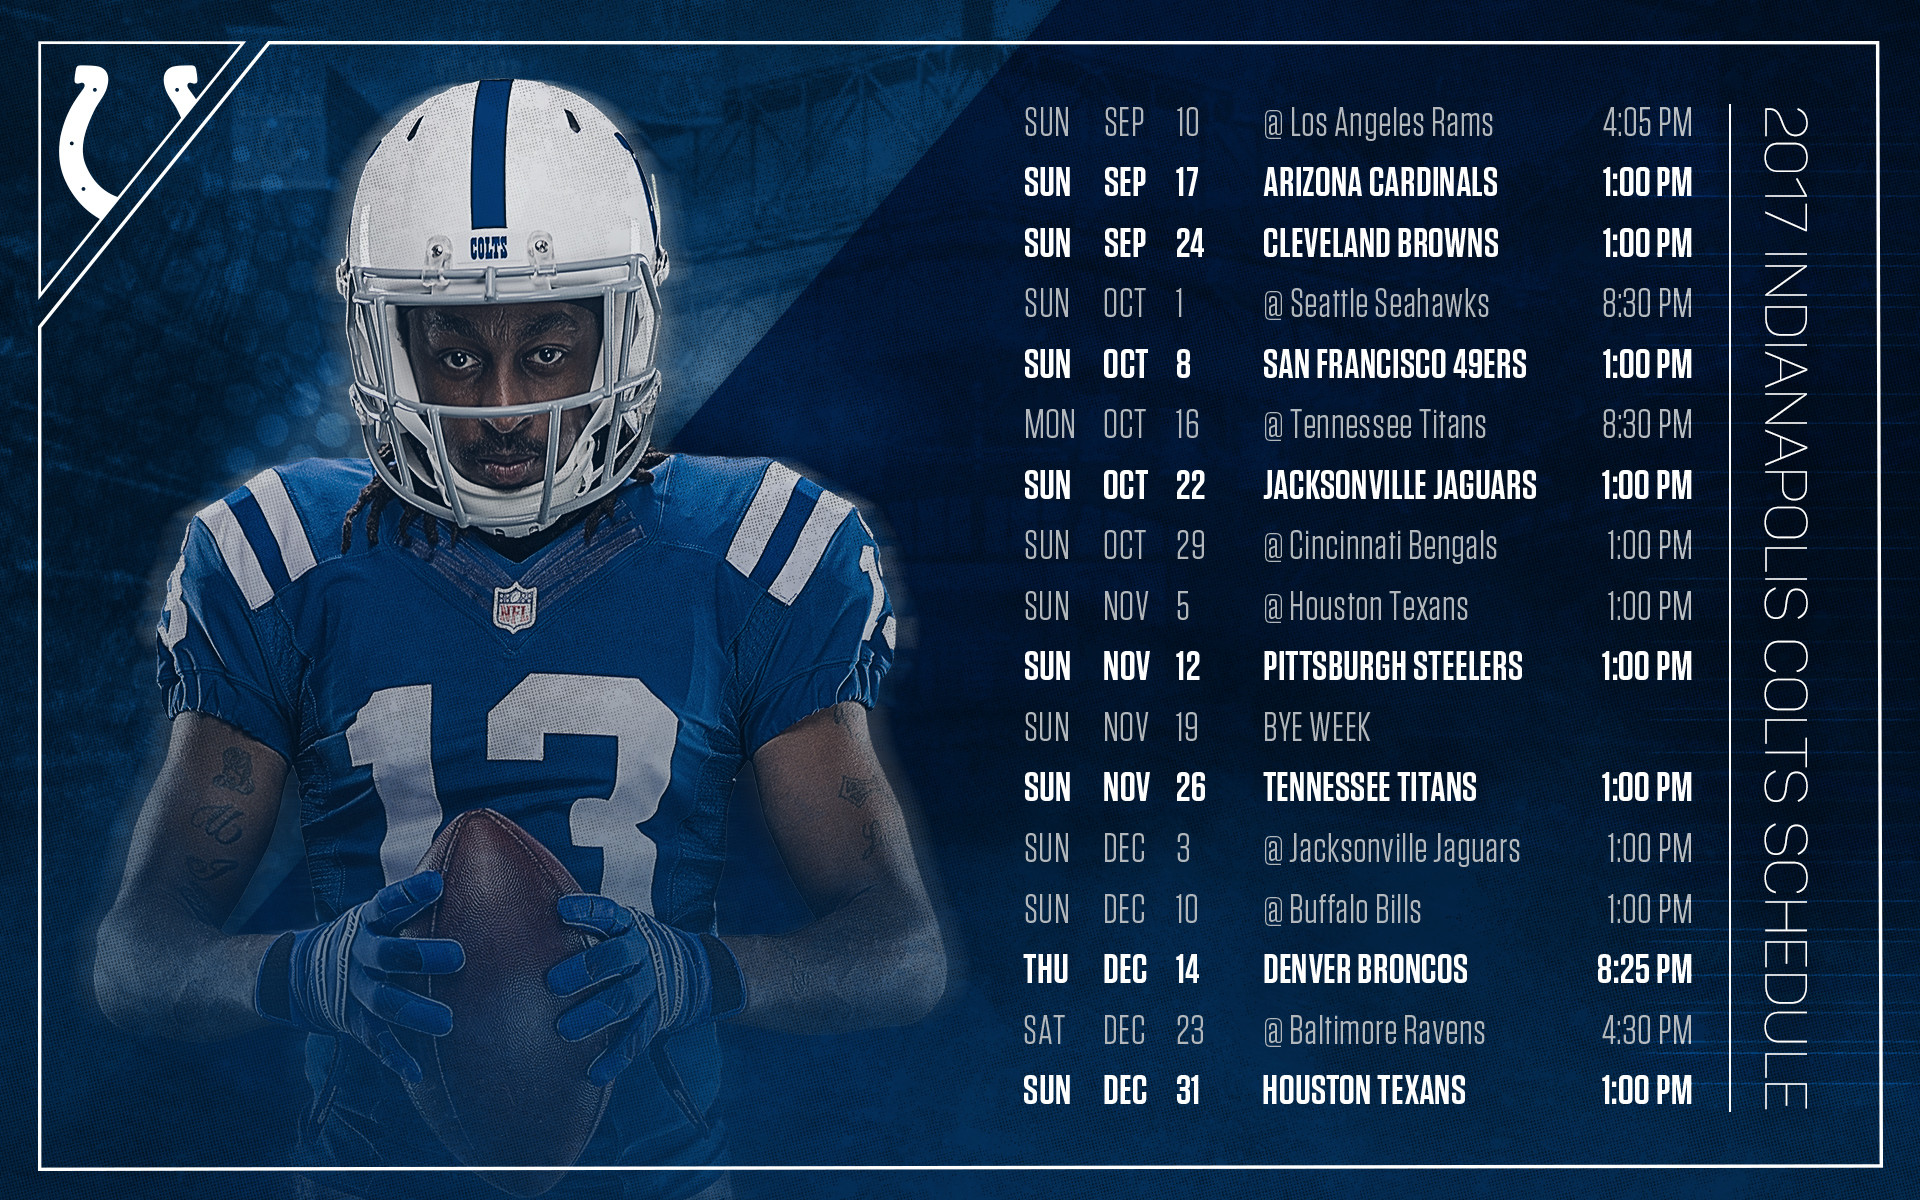 Colts Wallpaper the best 71 images in 2018 1920x1200